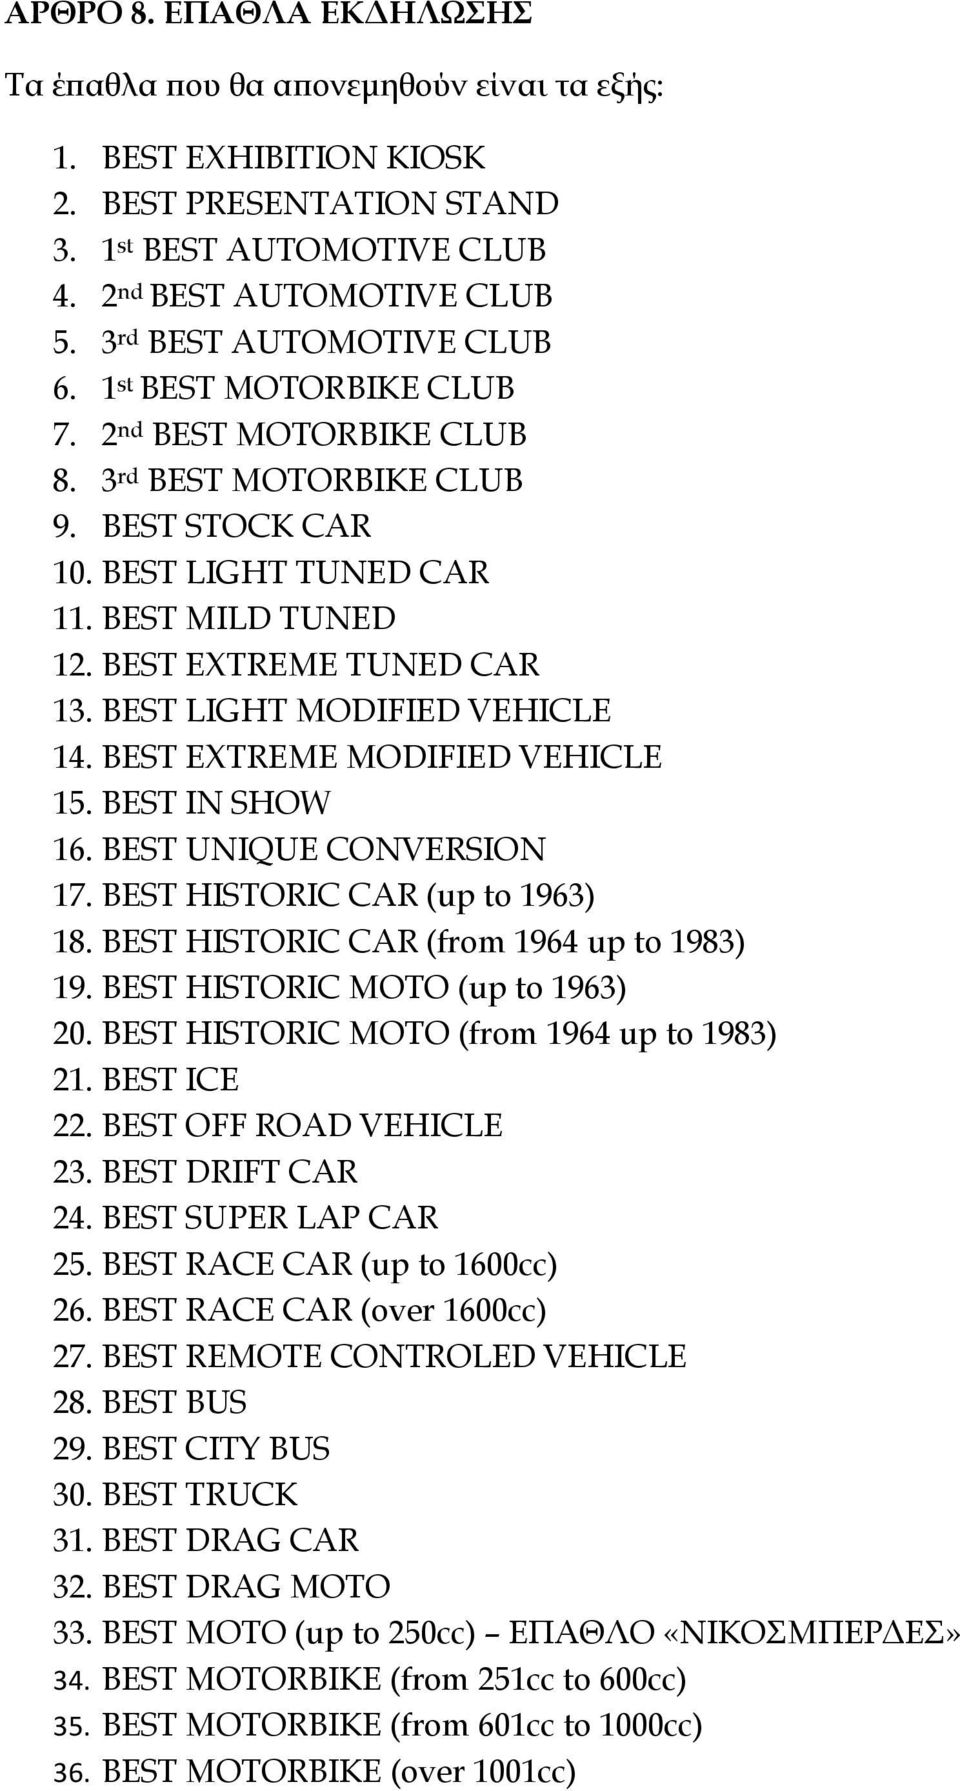 BEST EXTREME TUNED CAR 13. BEST LIGHT MODIFIED VEHICLE 14. BEST EXTREME MODIFIED VEHICLE 15. BEST IN SHOW 16. BEST UNIQUE CONVERSION 17. BEST HISTORIC CAR (up to 1963) 18.